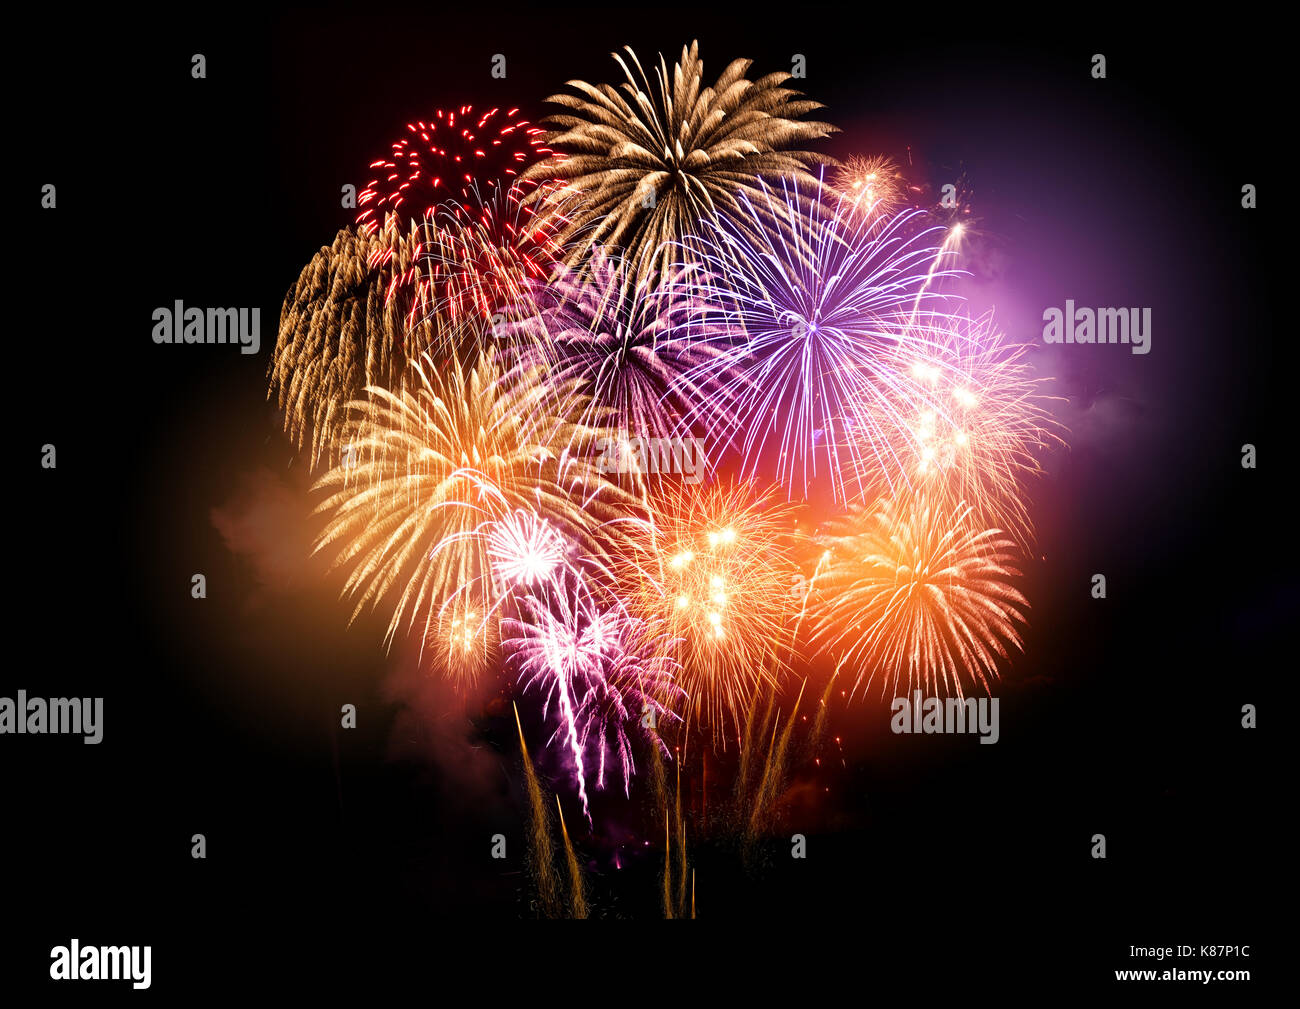 Bright and colourful fireworks display celebrations at night. - Stock Image